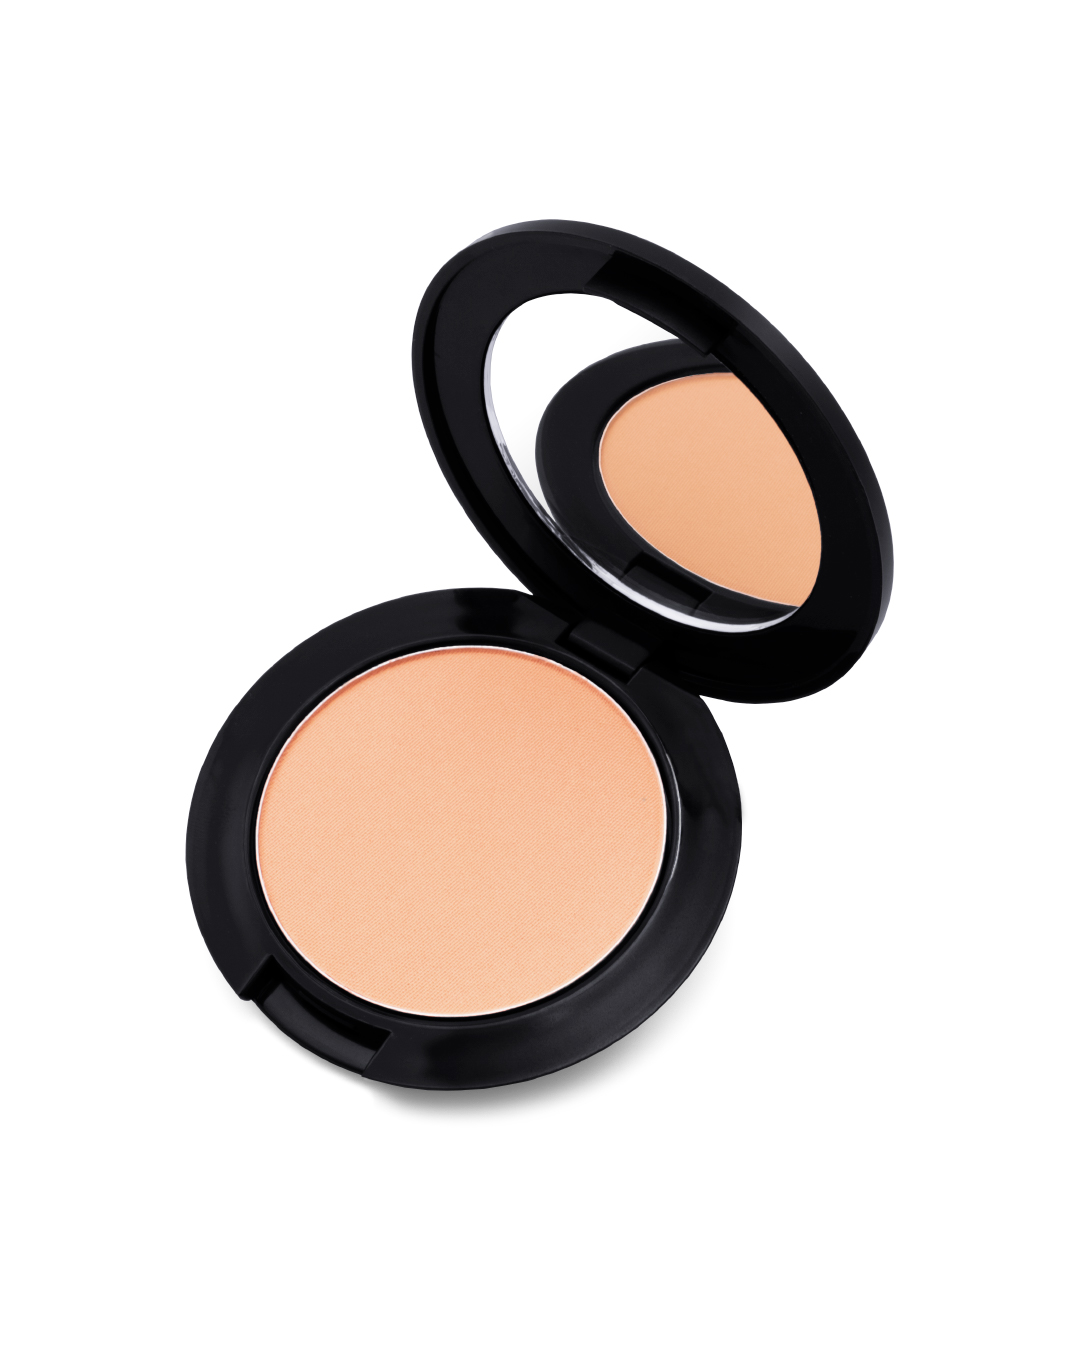 PEAC - OIL CONTROL PRESSED POWDER